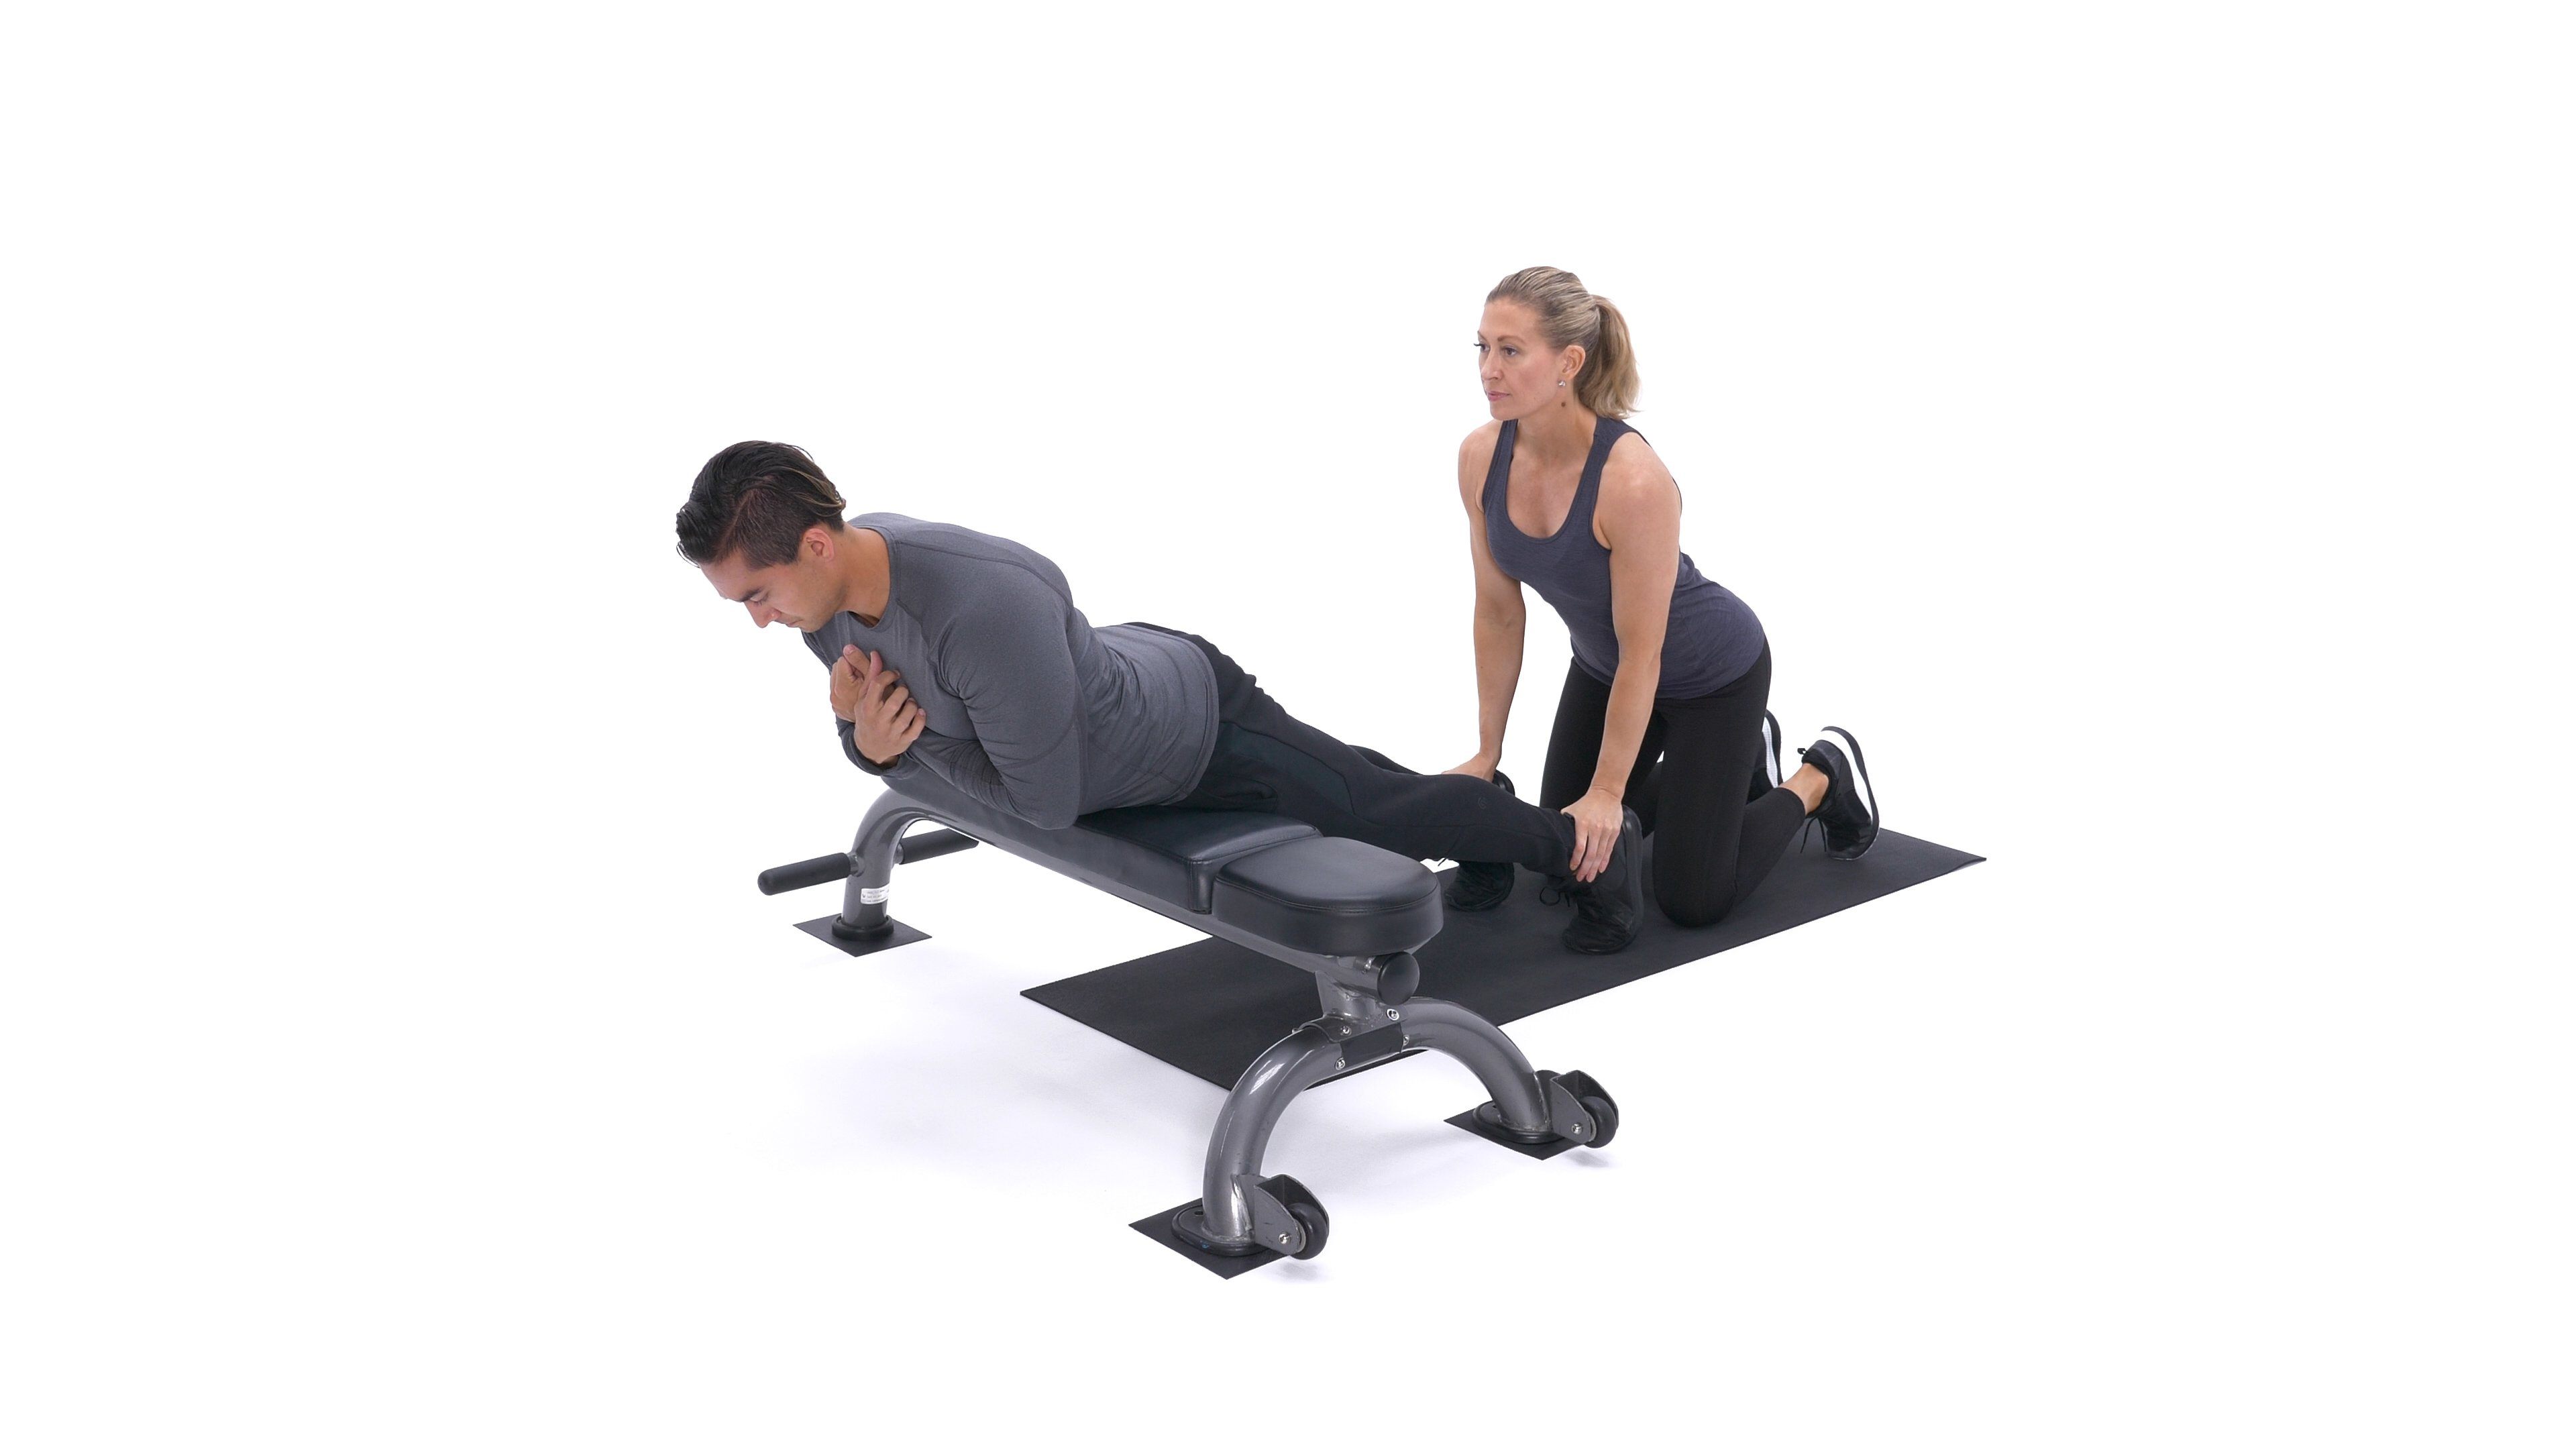 Partner Flat-Bench Back Extension image